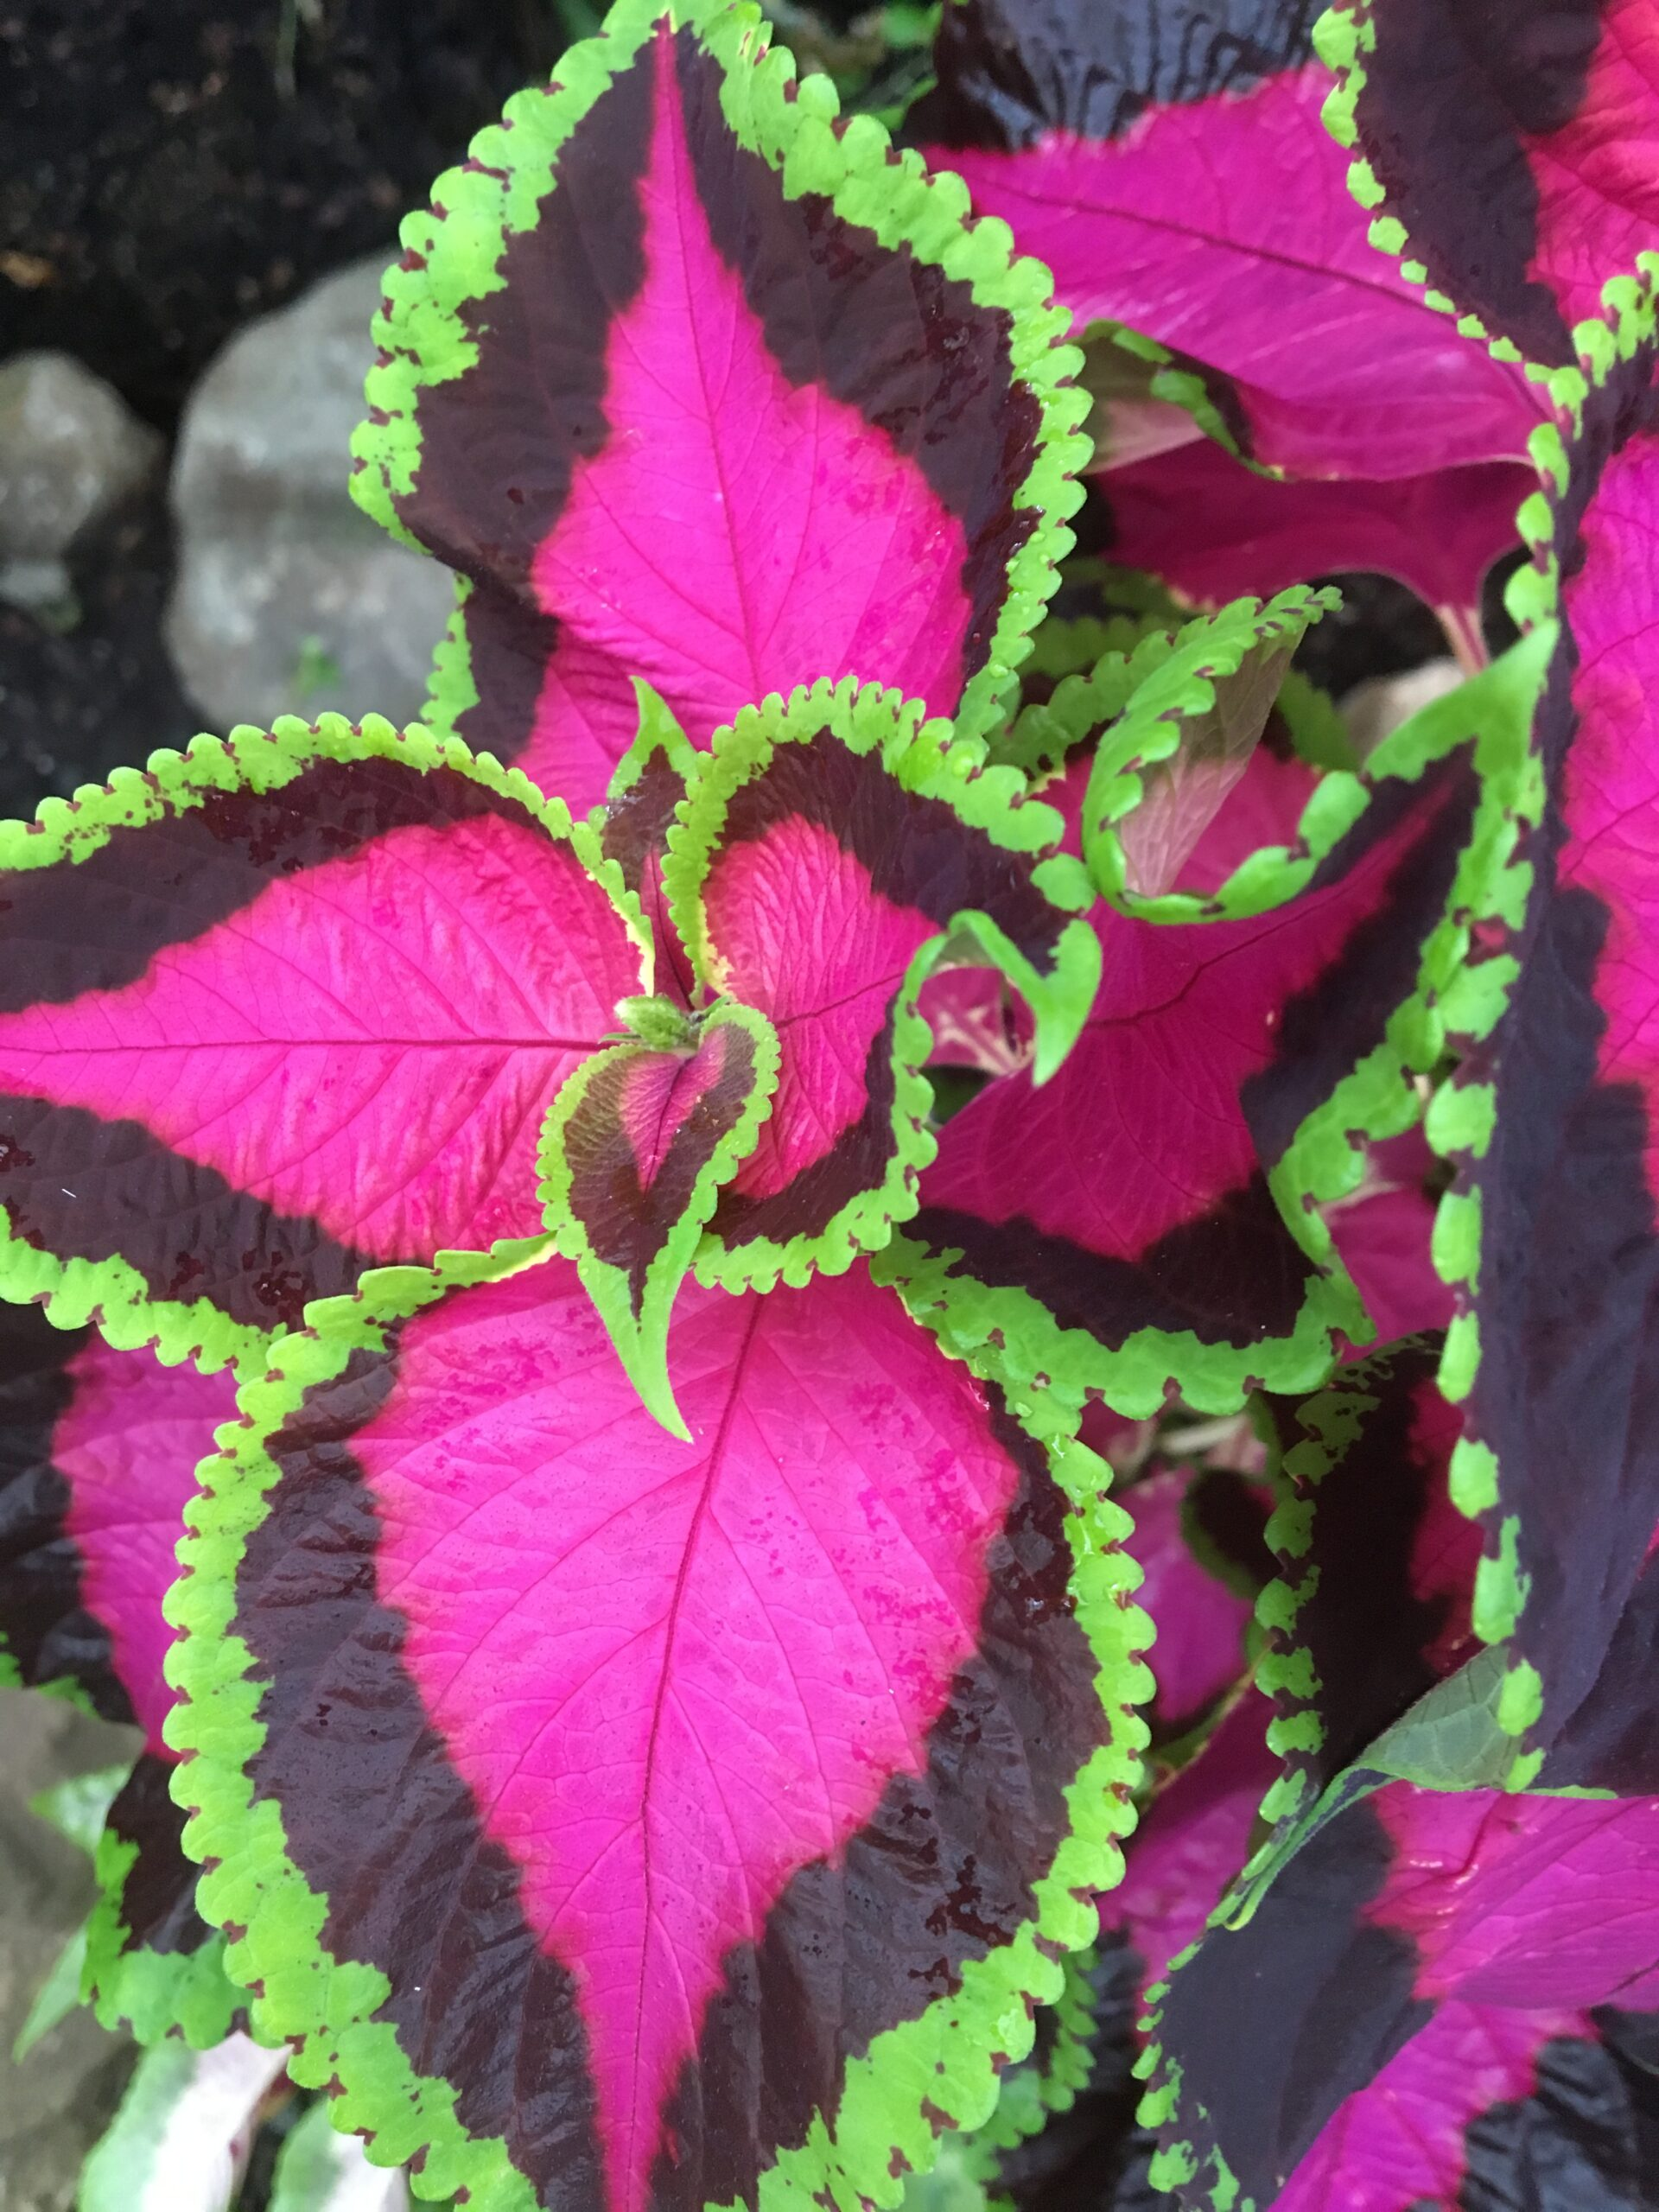 Fantastic Foliage Plants. Fuchsia pink and lime green Coleus leaves. Fantastic Foliage Plants For Your Garden